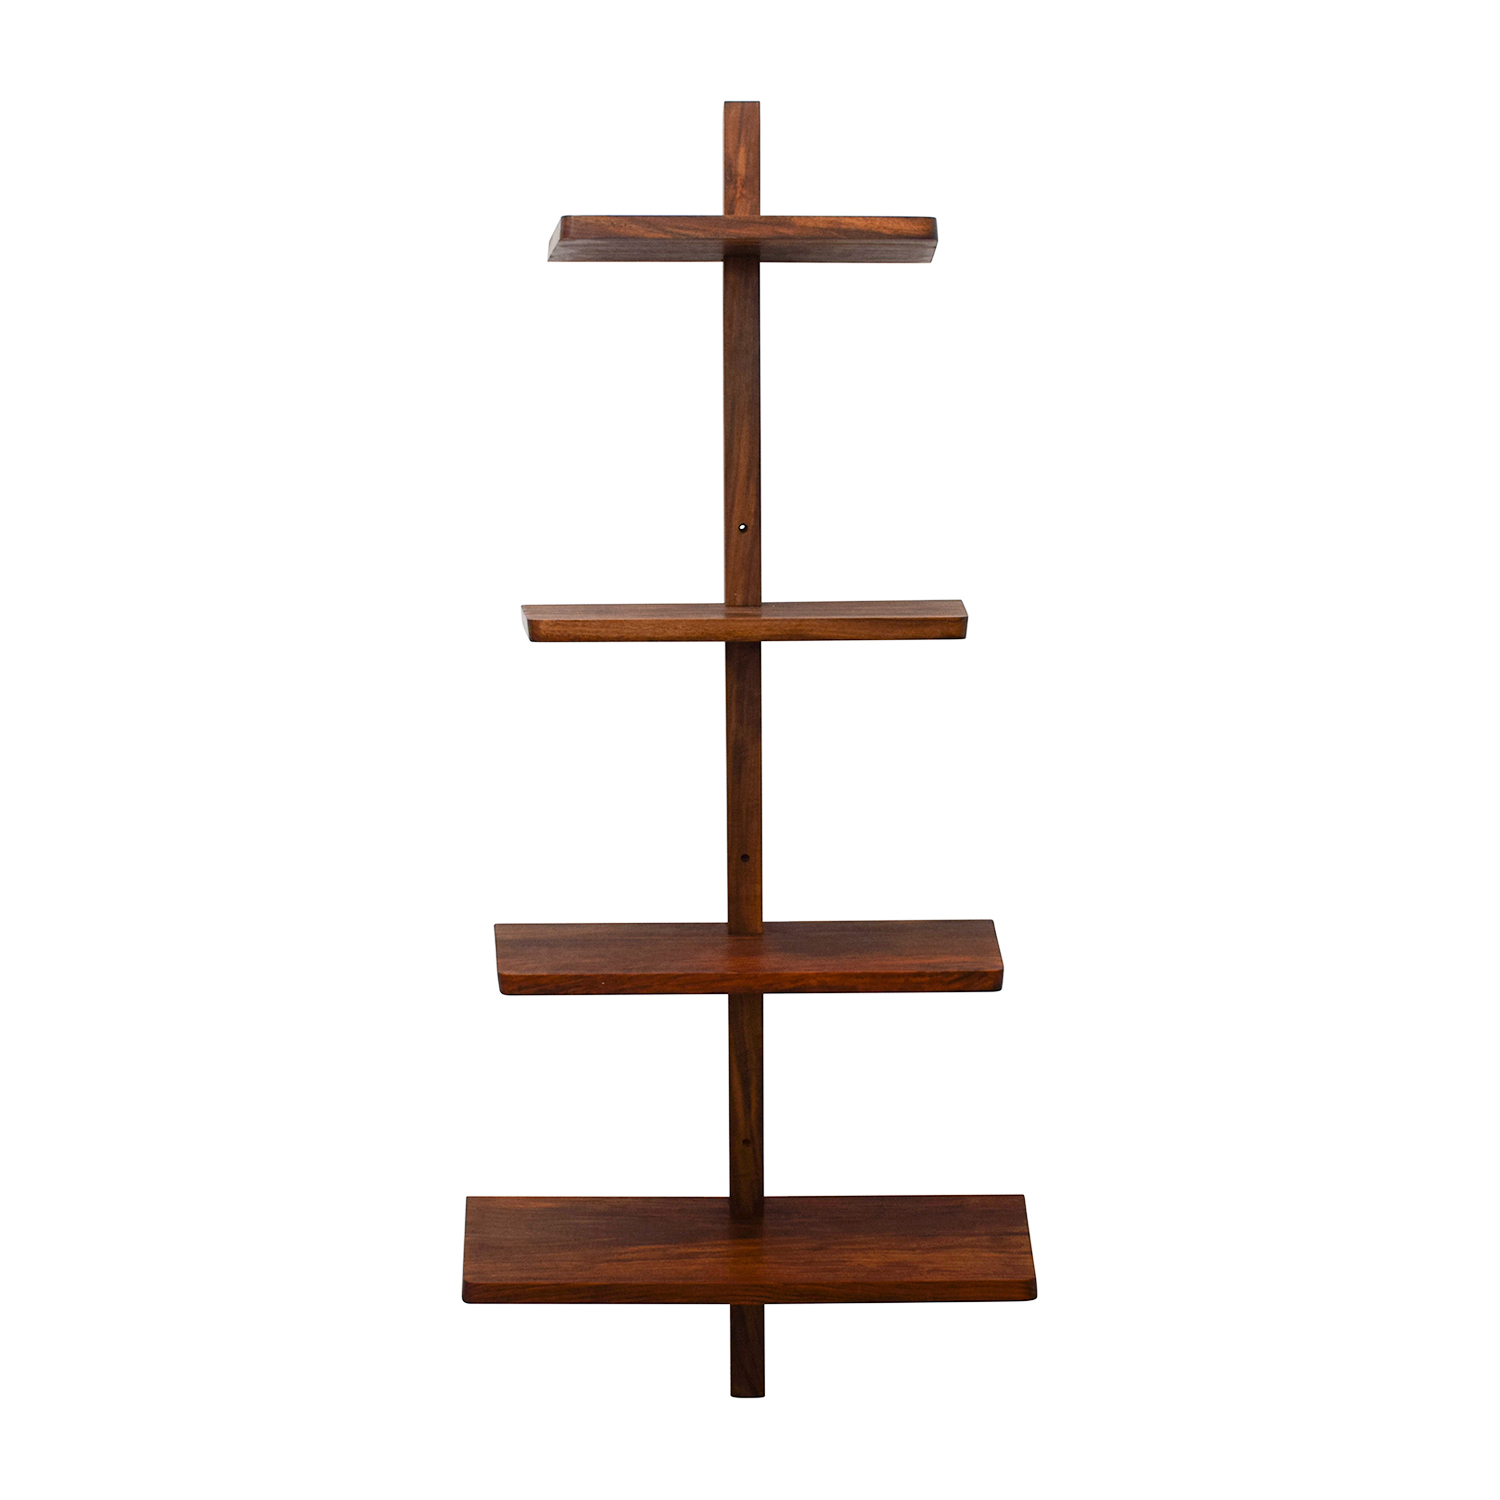 CB2 CB2 Wood Floating Wall Shelf Storage